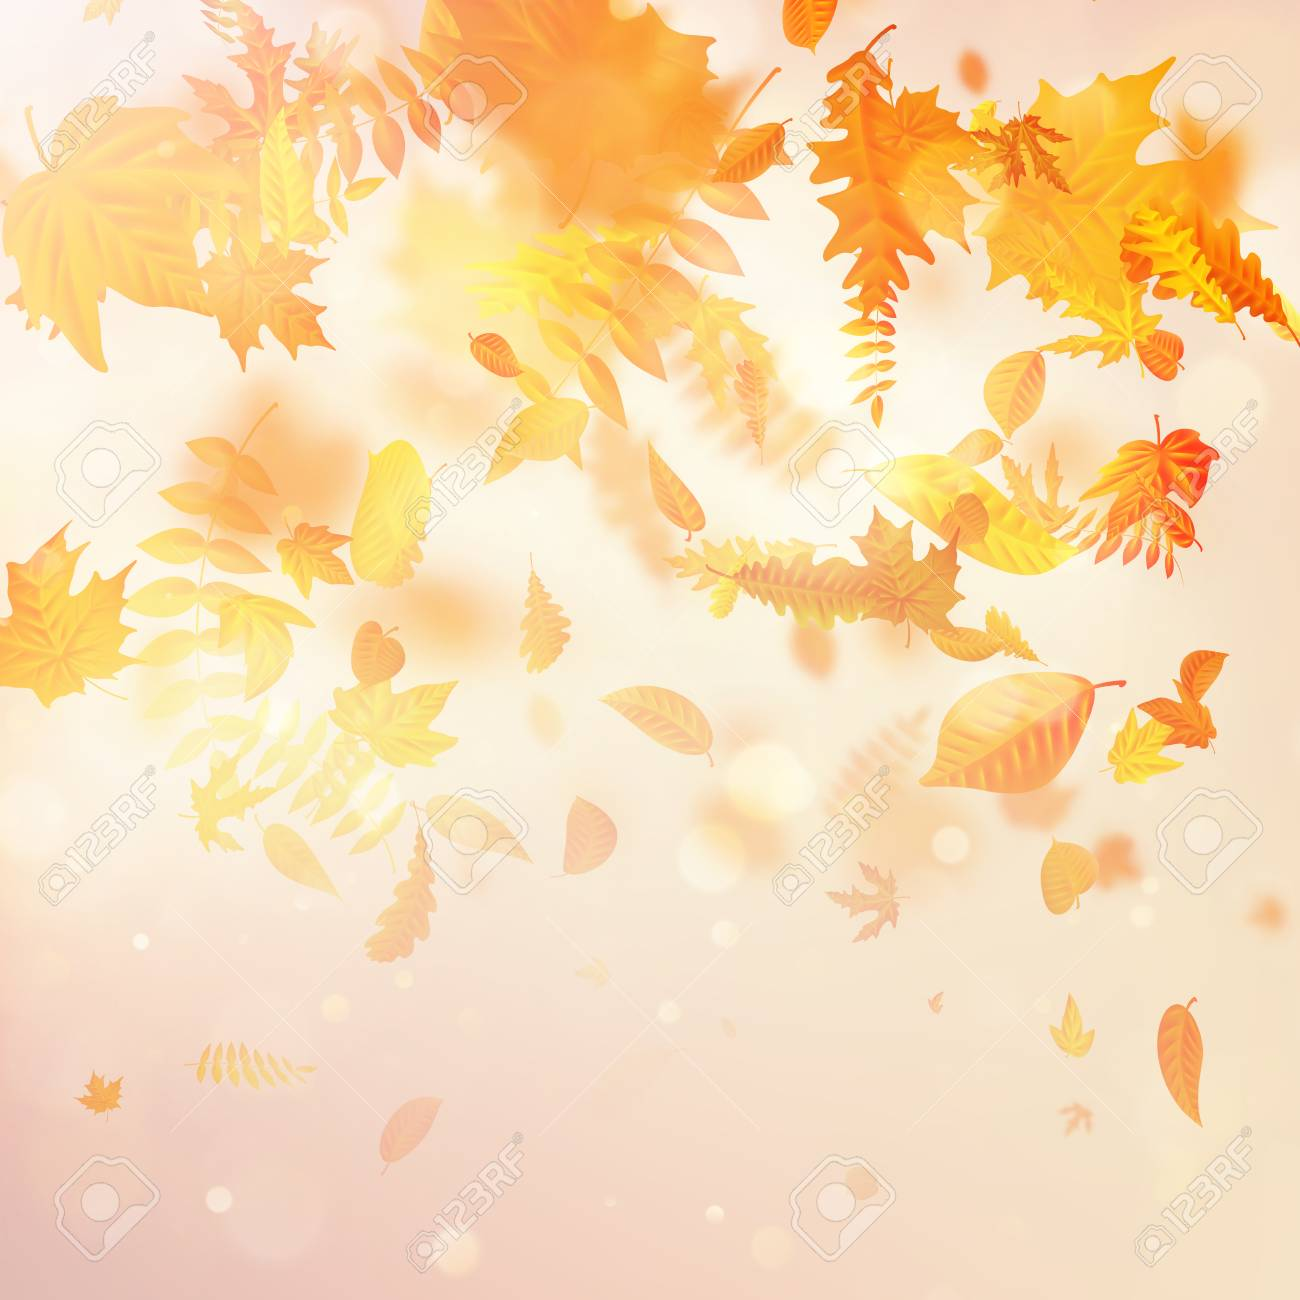 Autumnal foliage fall and poplar leaf flying in wind motion blur. EPS 10 vector file - 126062147